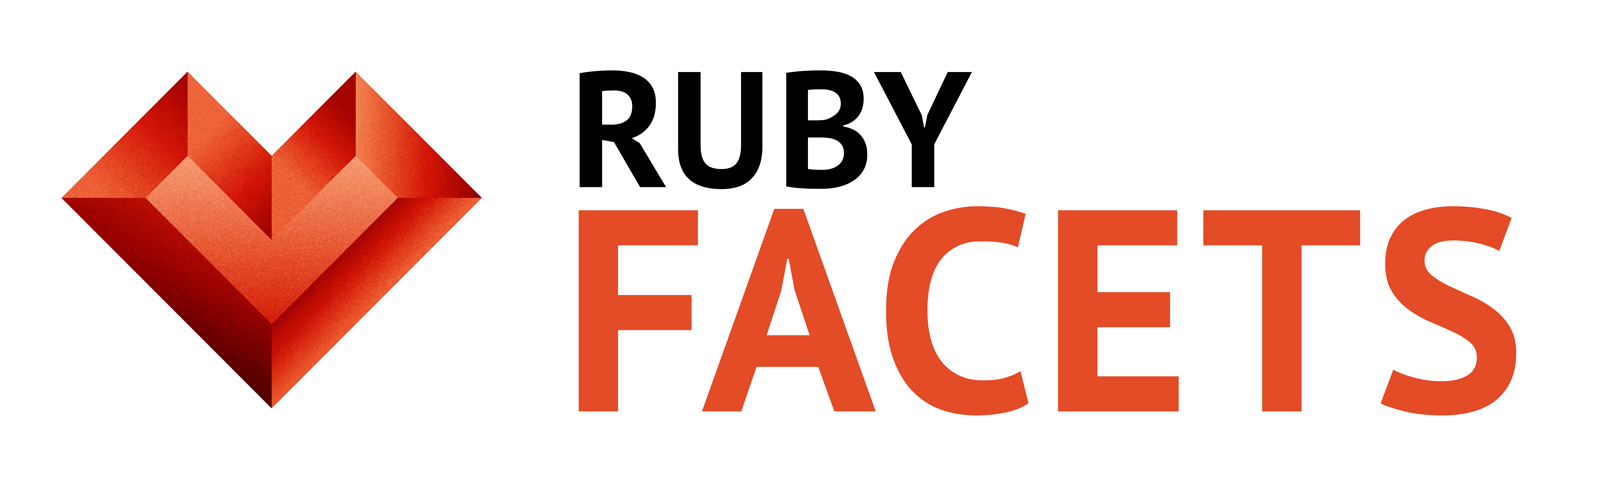 Ruby facets logo 1600